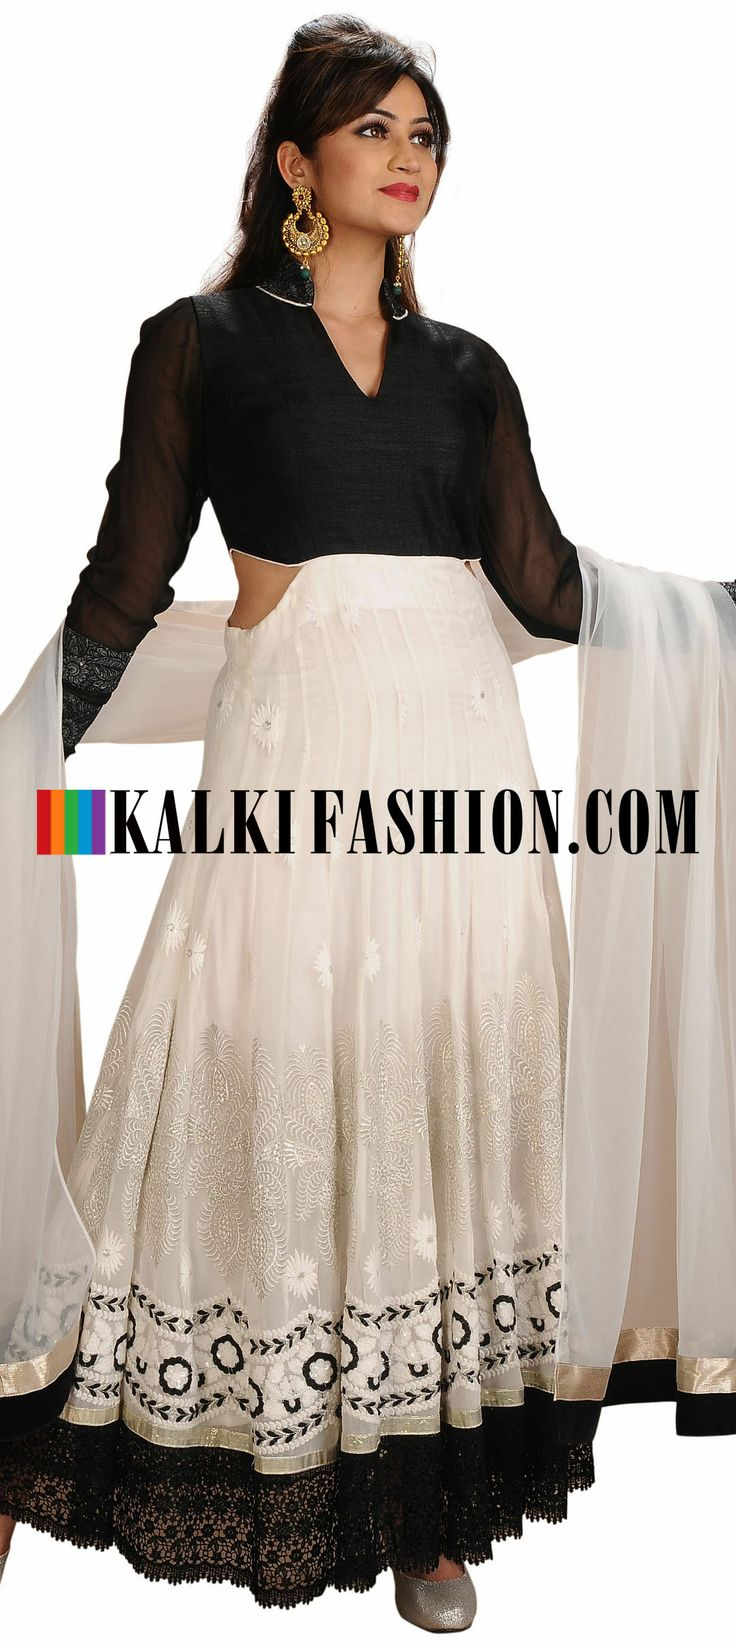 Buy Online from the link below. We ship worldwide (Free Shipping over US$100)  http://www.kalkifashion.com/white-and-black-anarkali-suit-embellished-in-croquet-lace.html